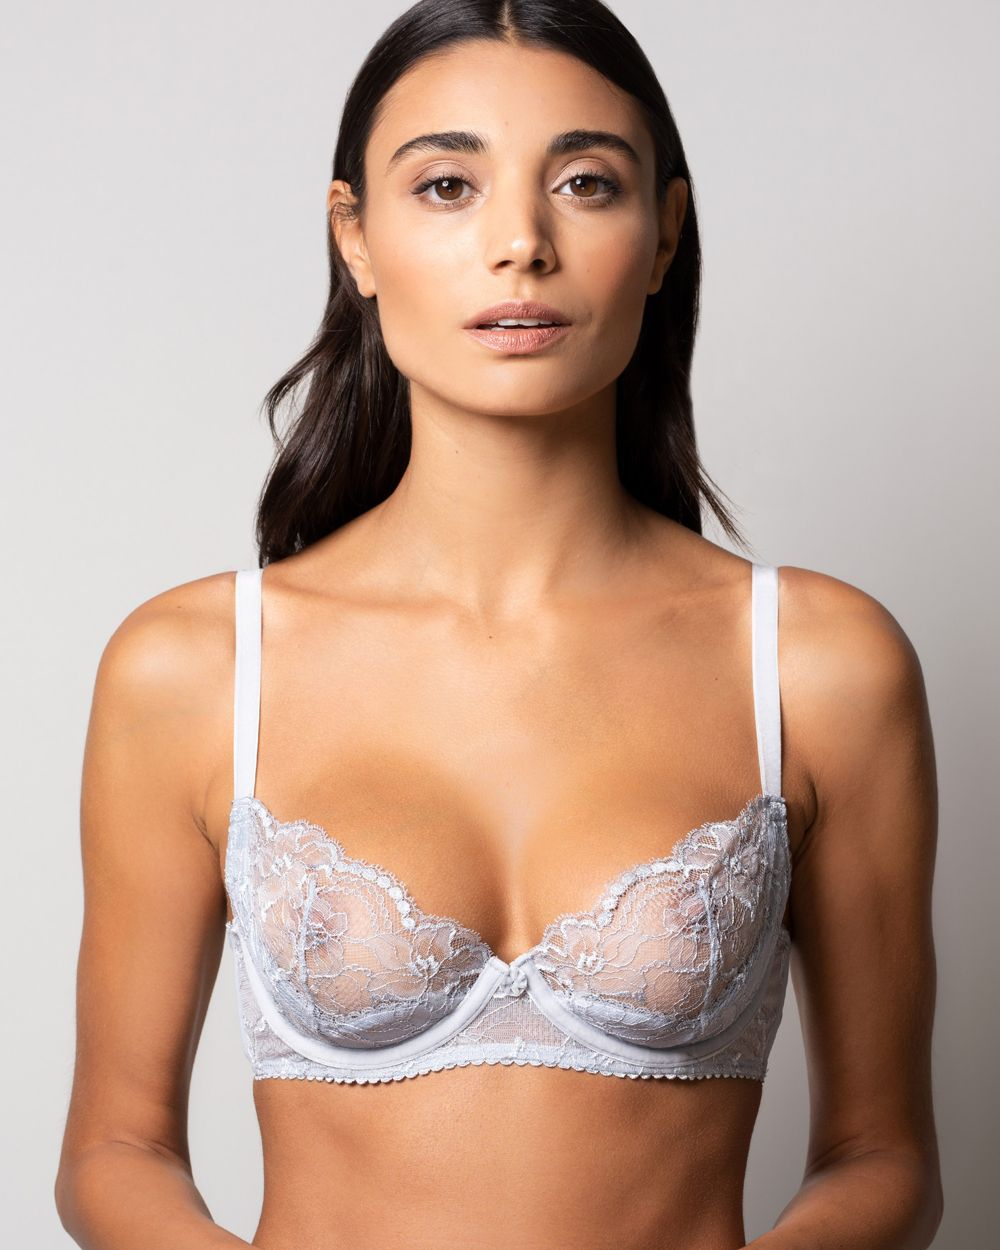 Tryst Balconette Bra by Dita Von Teese Journelle Only Hearts Natori Livy Only Hearts